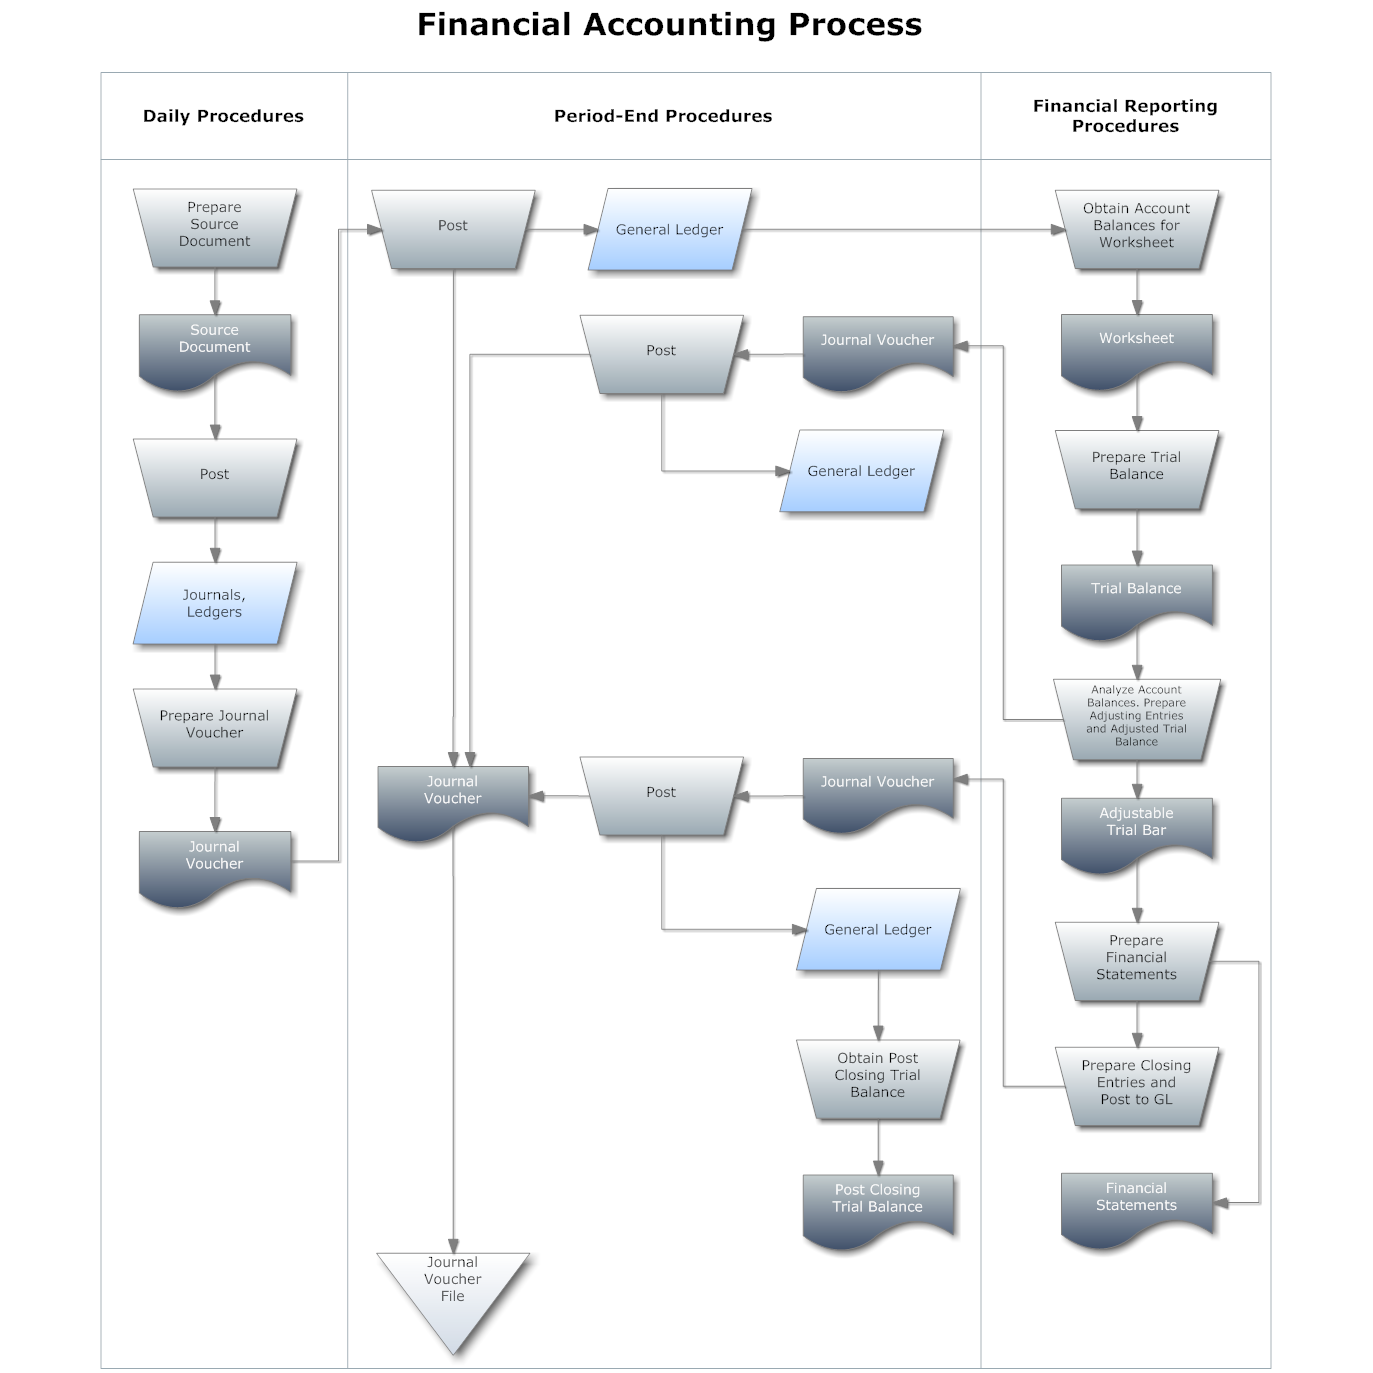 flowchart example financial accounting process png times  flowchart example financial accounting process png 1 373times1 373 pixels